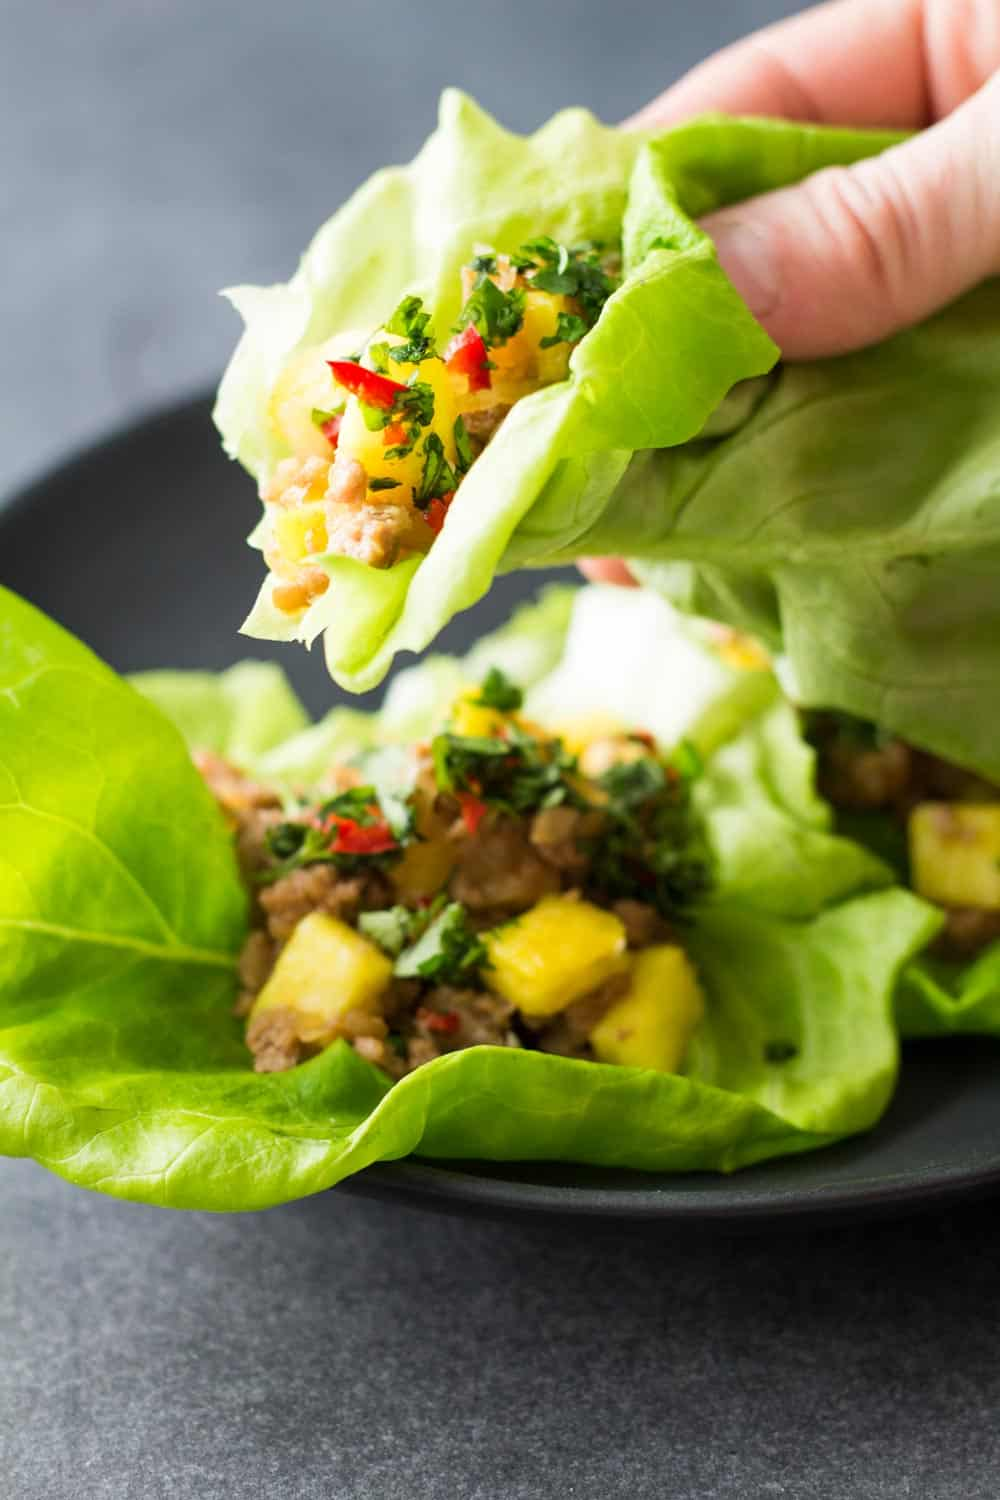 Close up of Ground Pork Lettuce Wrap in hand